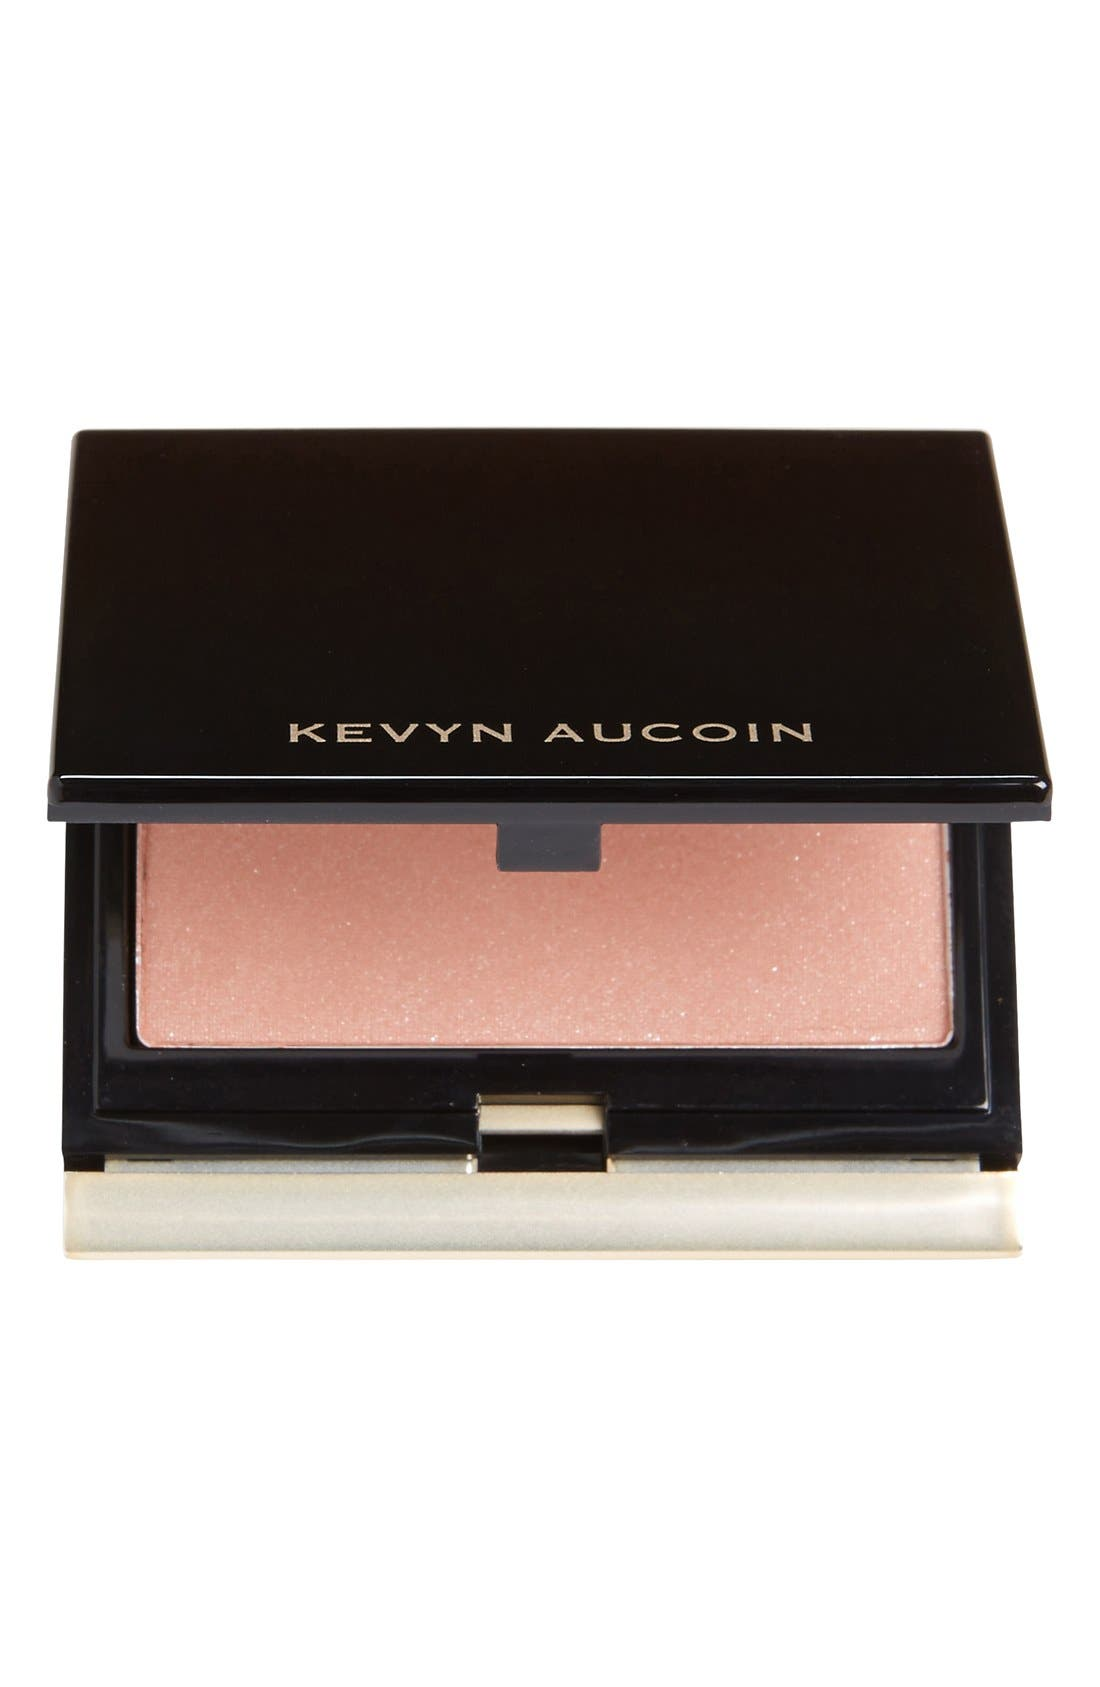 SPACE.NK.apothecary Kevyn Aucoin Beauty Pure Powder Glow,                         Main,                         color, 250